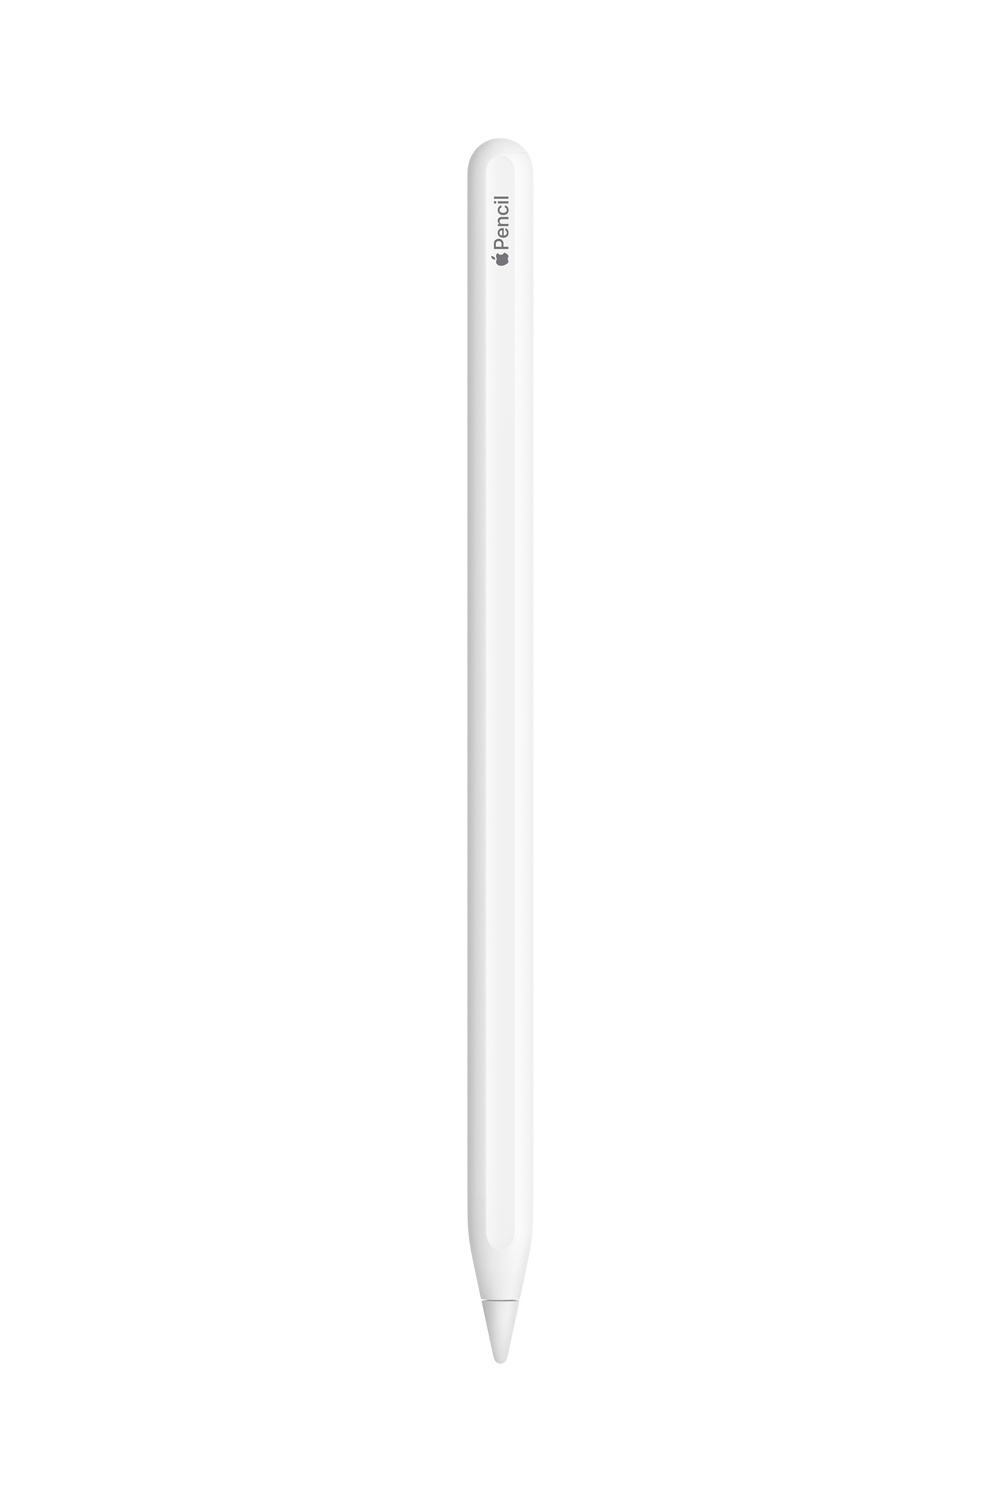 Apple Pencil (2nd Generation) - QuickPantry